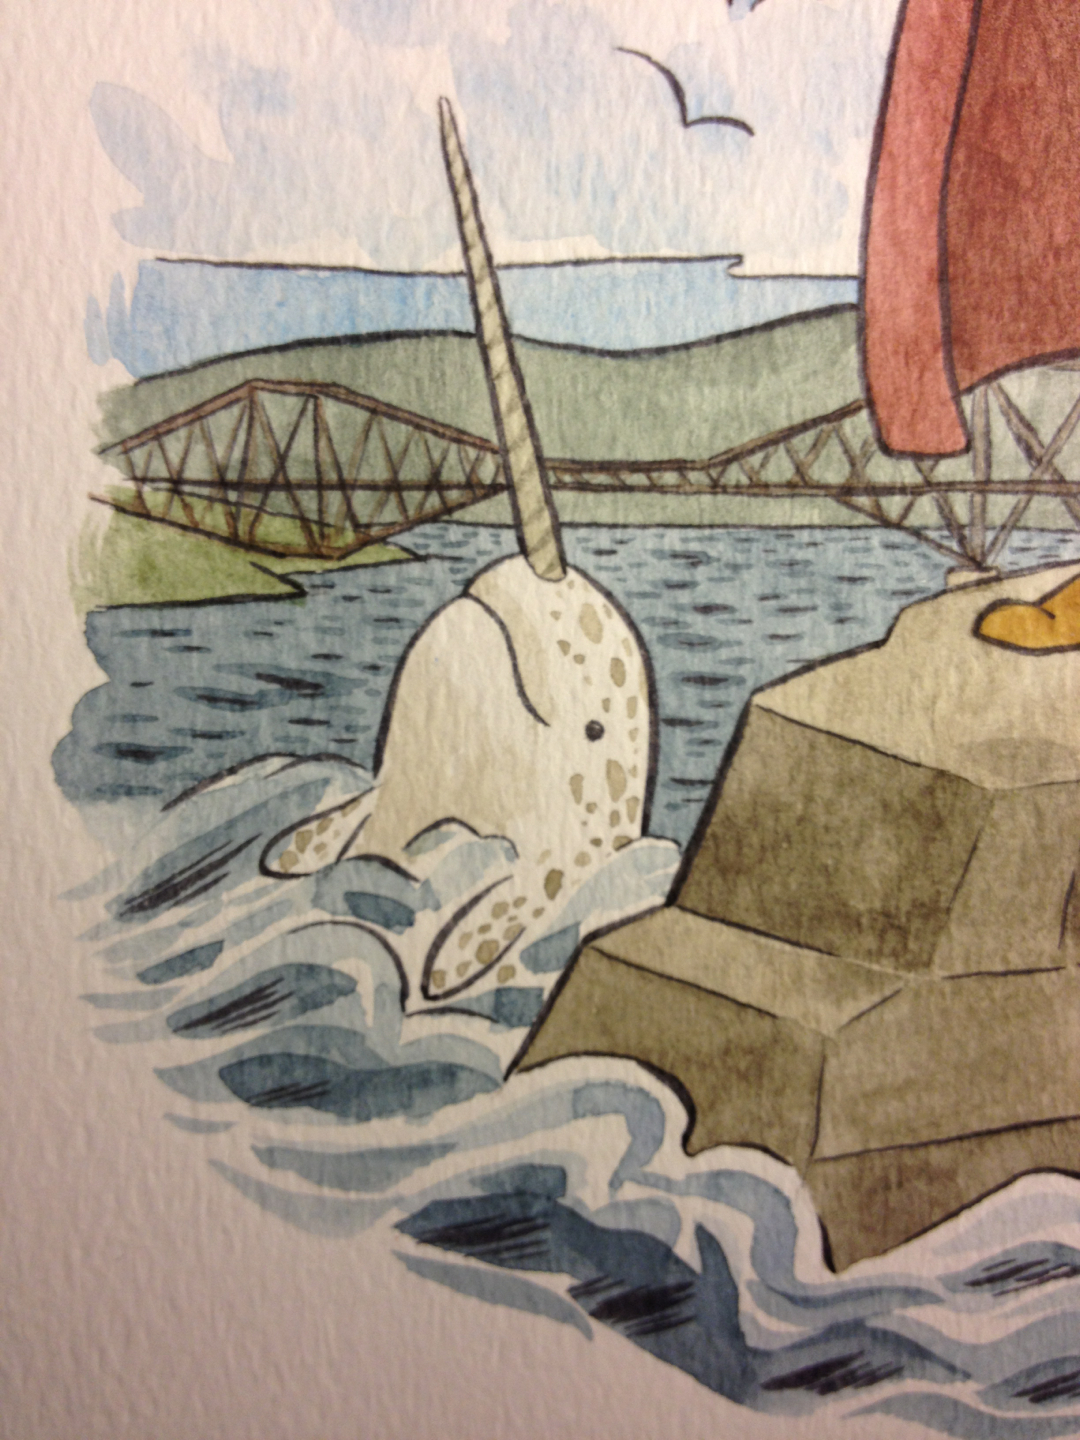 Detail from a commission piece I did today. Maybe I will put a narwhal in every piece of art I make from now on. Narwhals forever! Don't worry, manatees. You're still my faves.